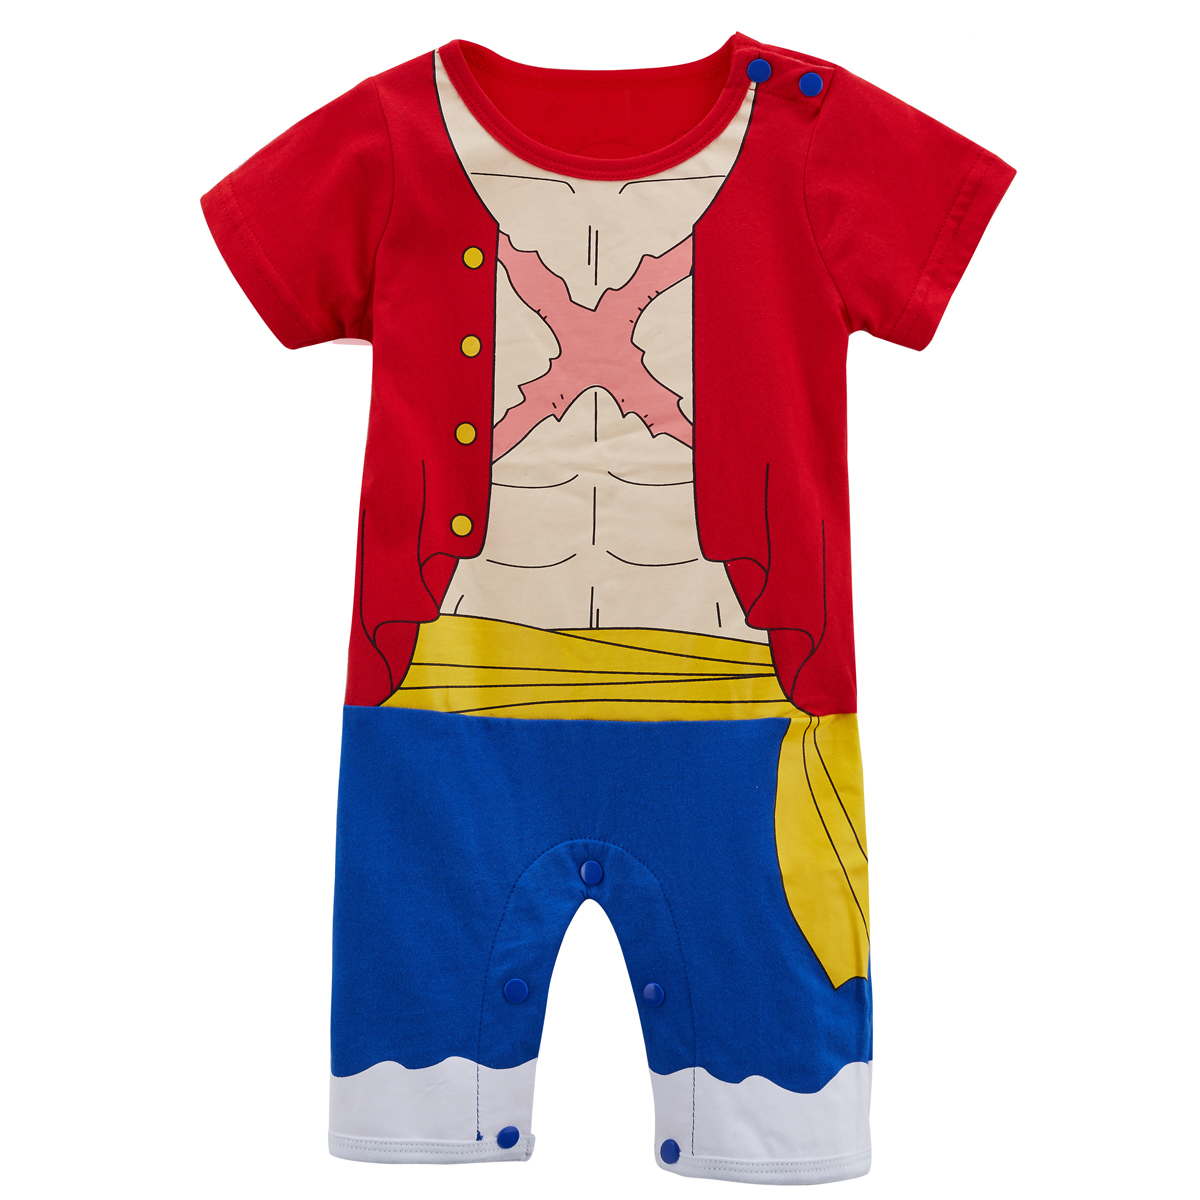 Baby Boys Luffy Roronoa Zoro Cosplay   Romper   Infant One Piece Anime Jumpsuit Newborn Cartoon Playsuit Costume